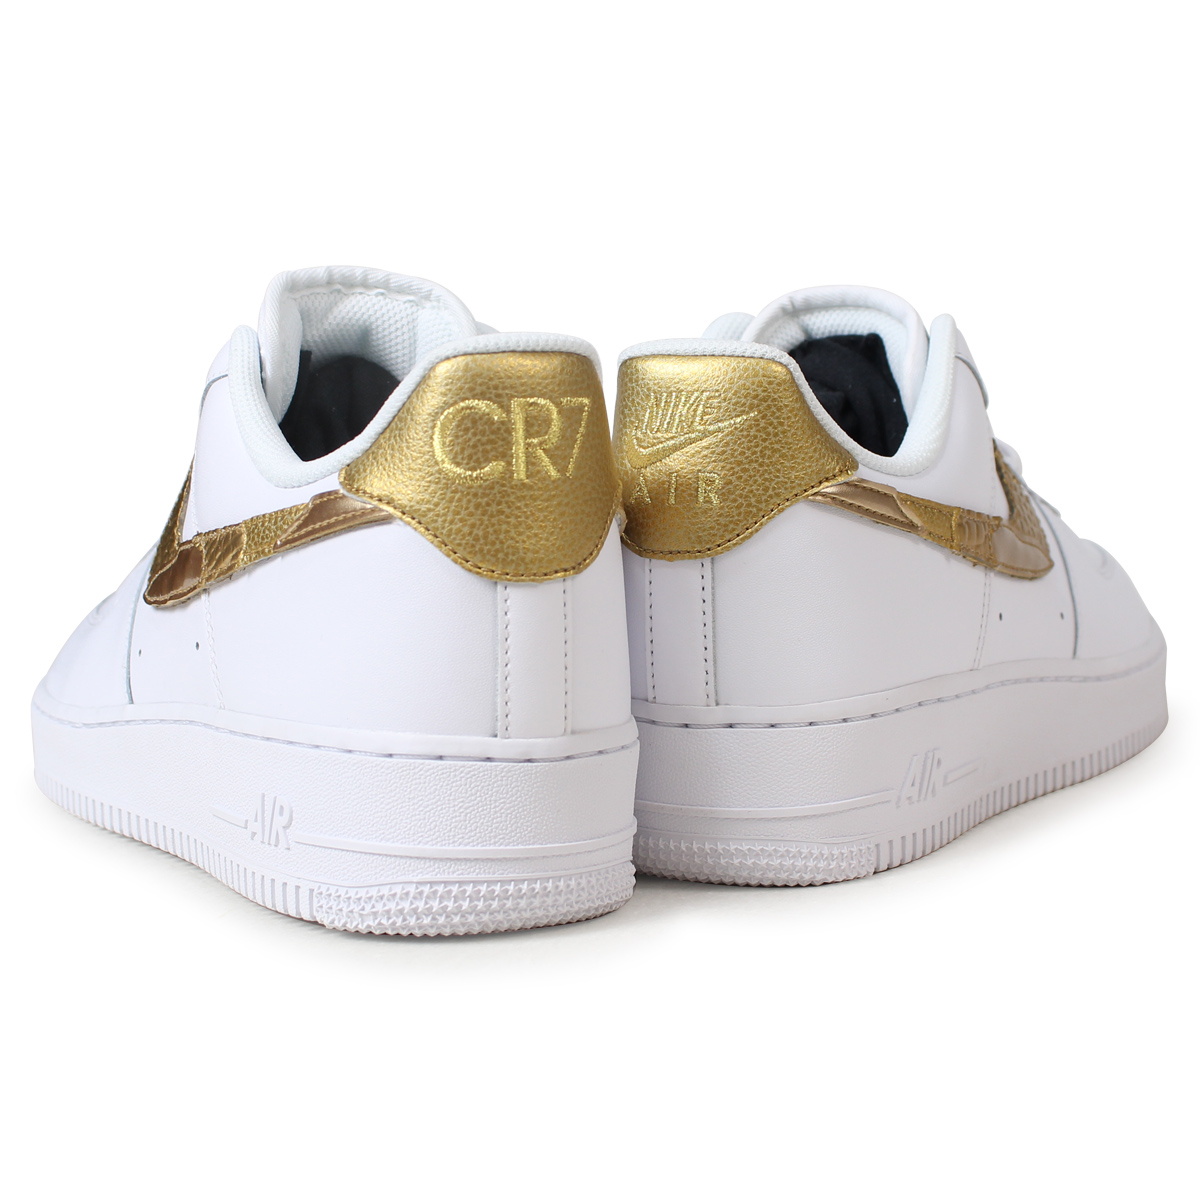 fff47f894a8 NIKE AIR FORCE 1 CR7 GOLDEN PATCHWORK Nike air force 1 07 sneakers men  AQ0666-100 white  185